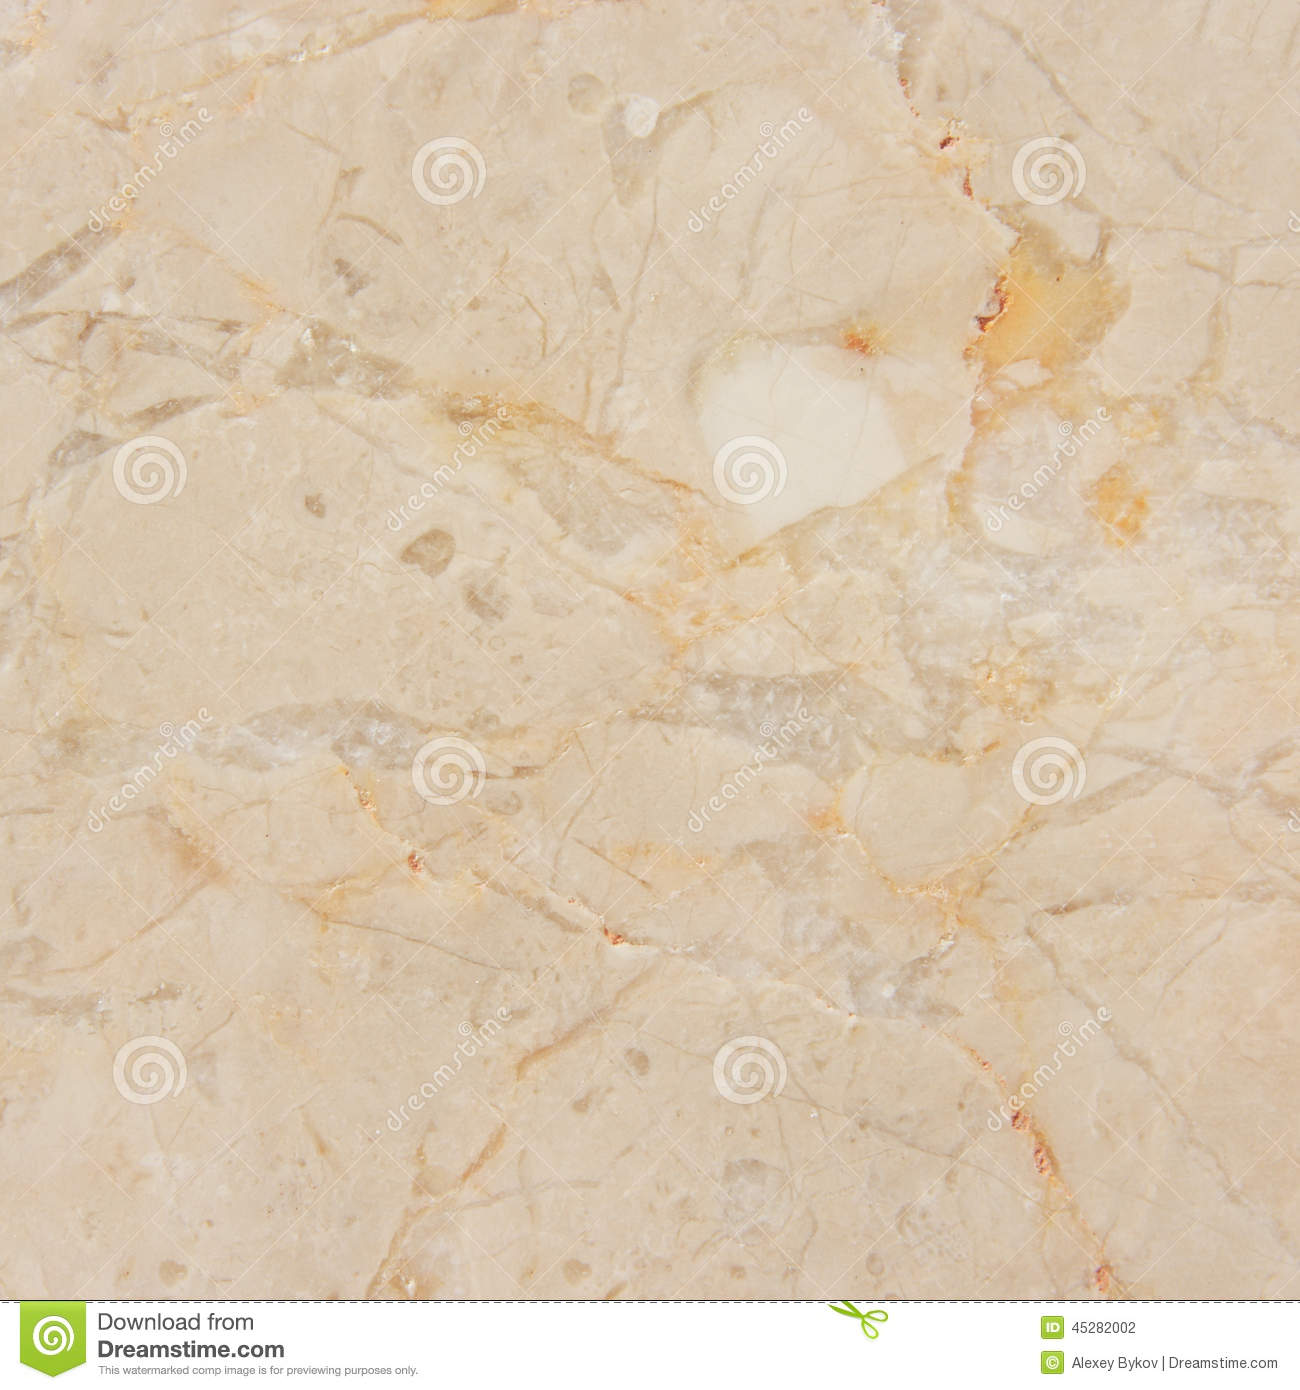 Fond De Marbre Beige De Carrelage Photo stock - Image ...